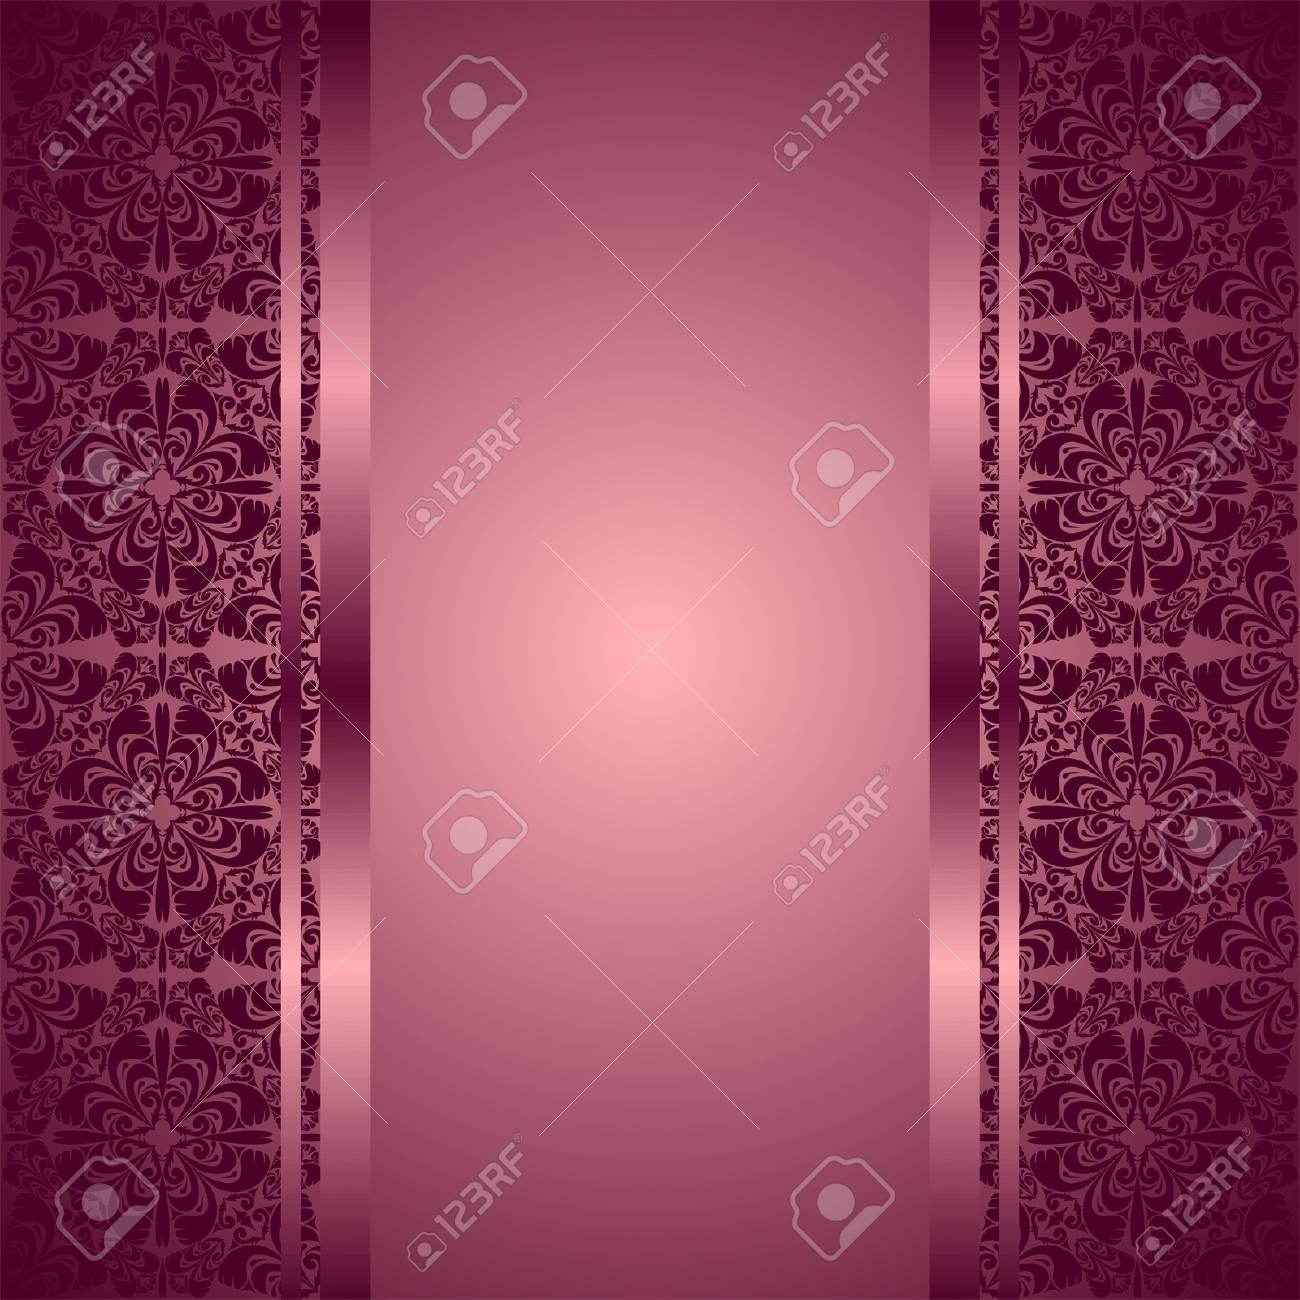 Luxury violet Background decorated a ornament. - 16492435